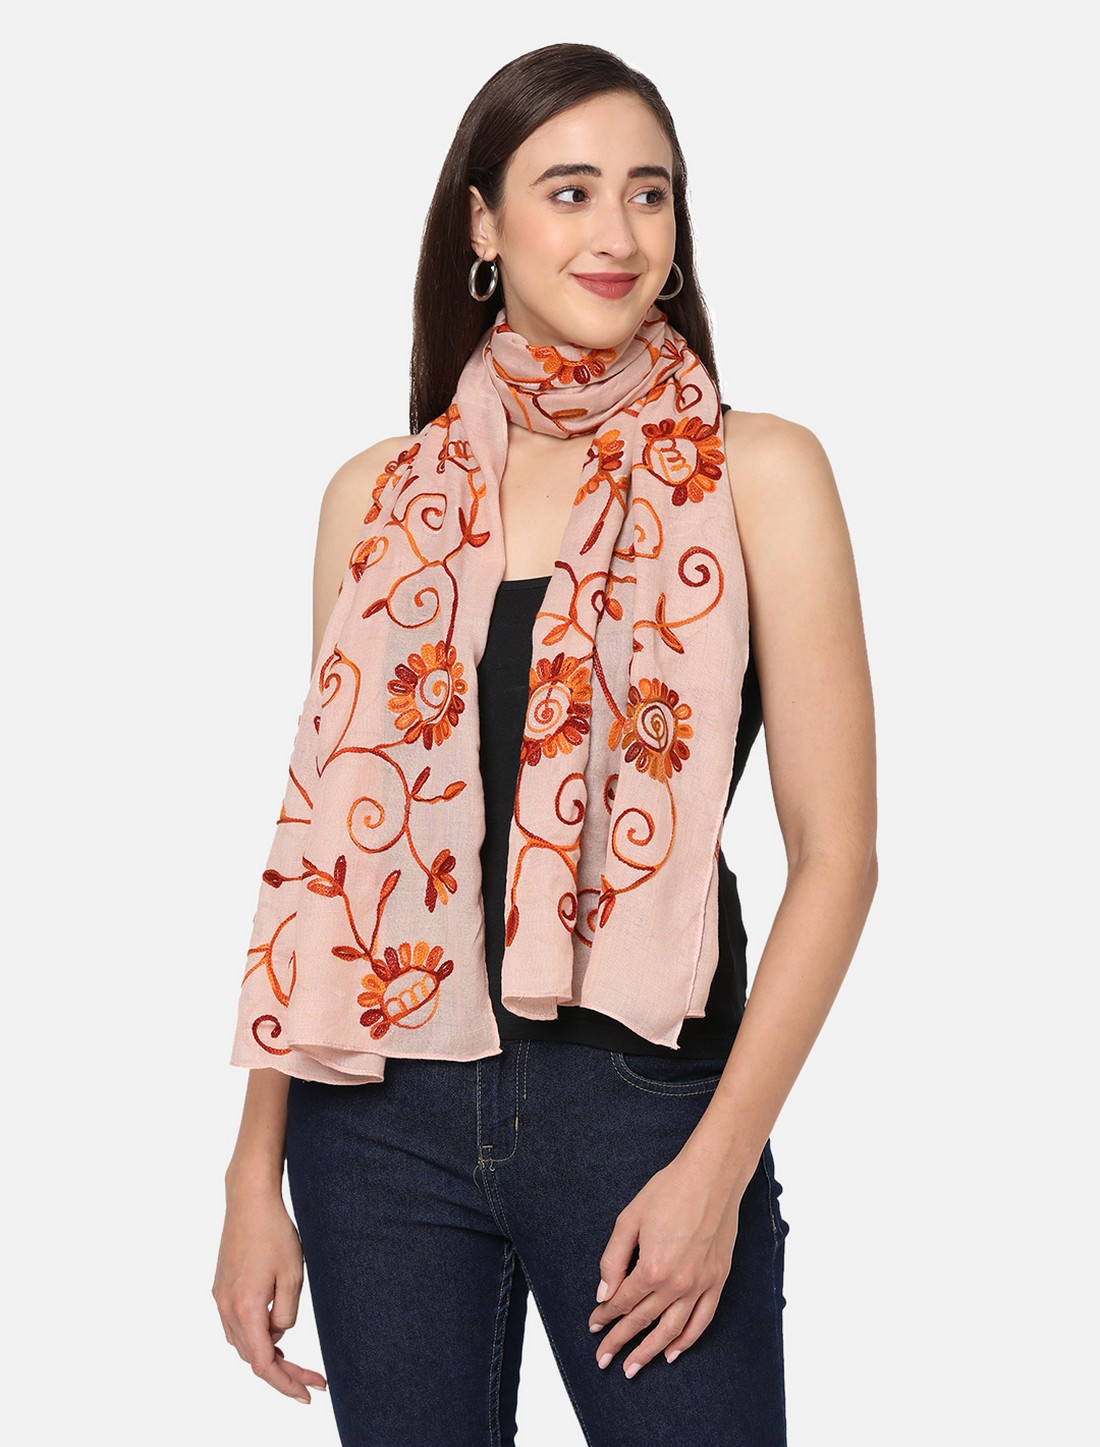 Get Wrapped   Get Wrapped All Over Embroidered Scarves for Women